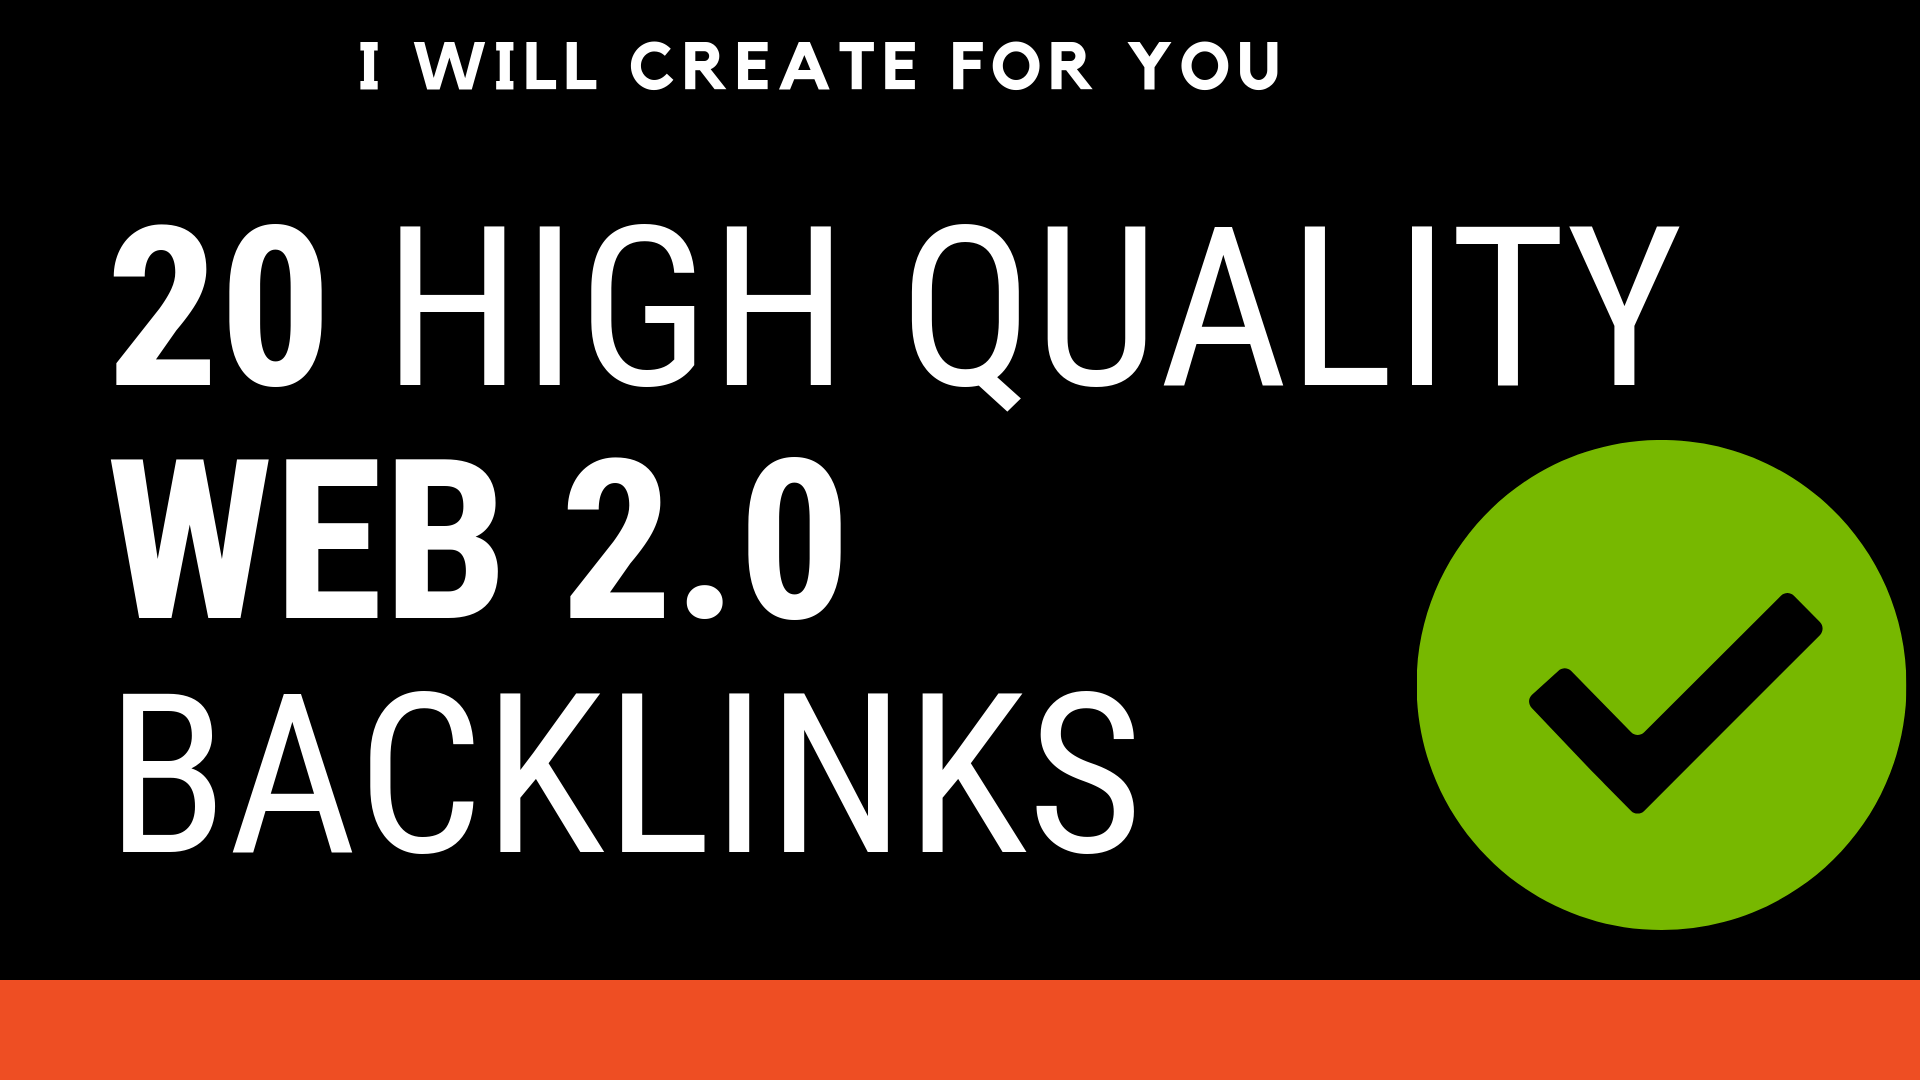 I Give You 20 High Quality Web 2.0 Backlinks Manually